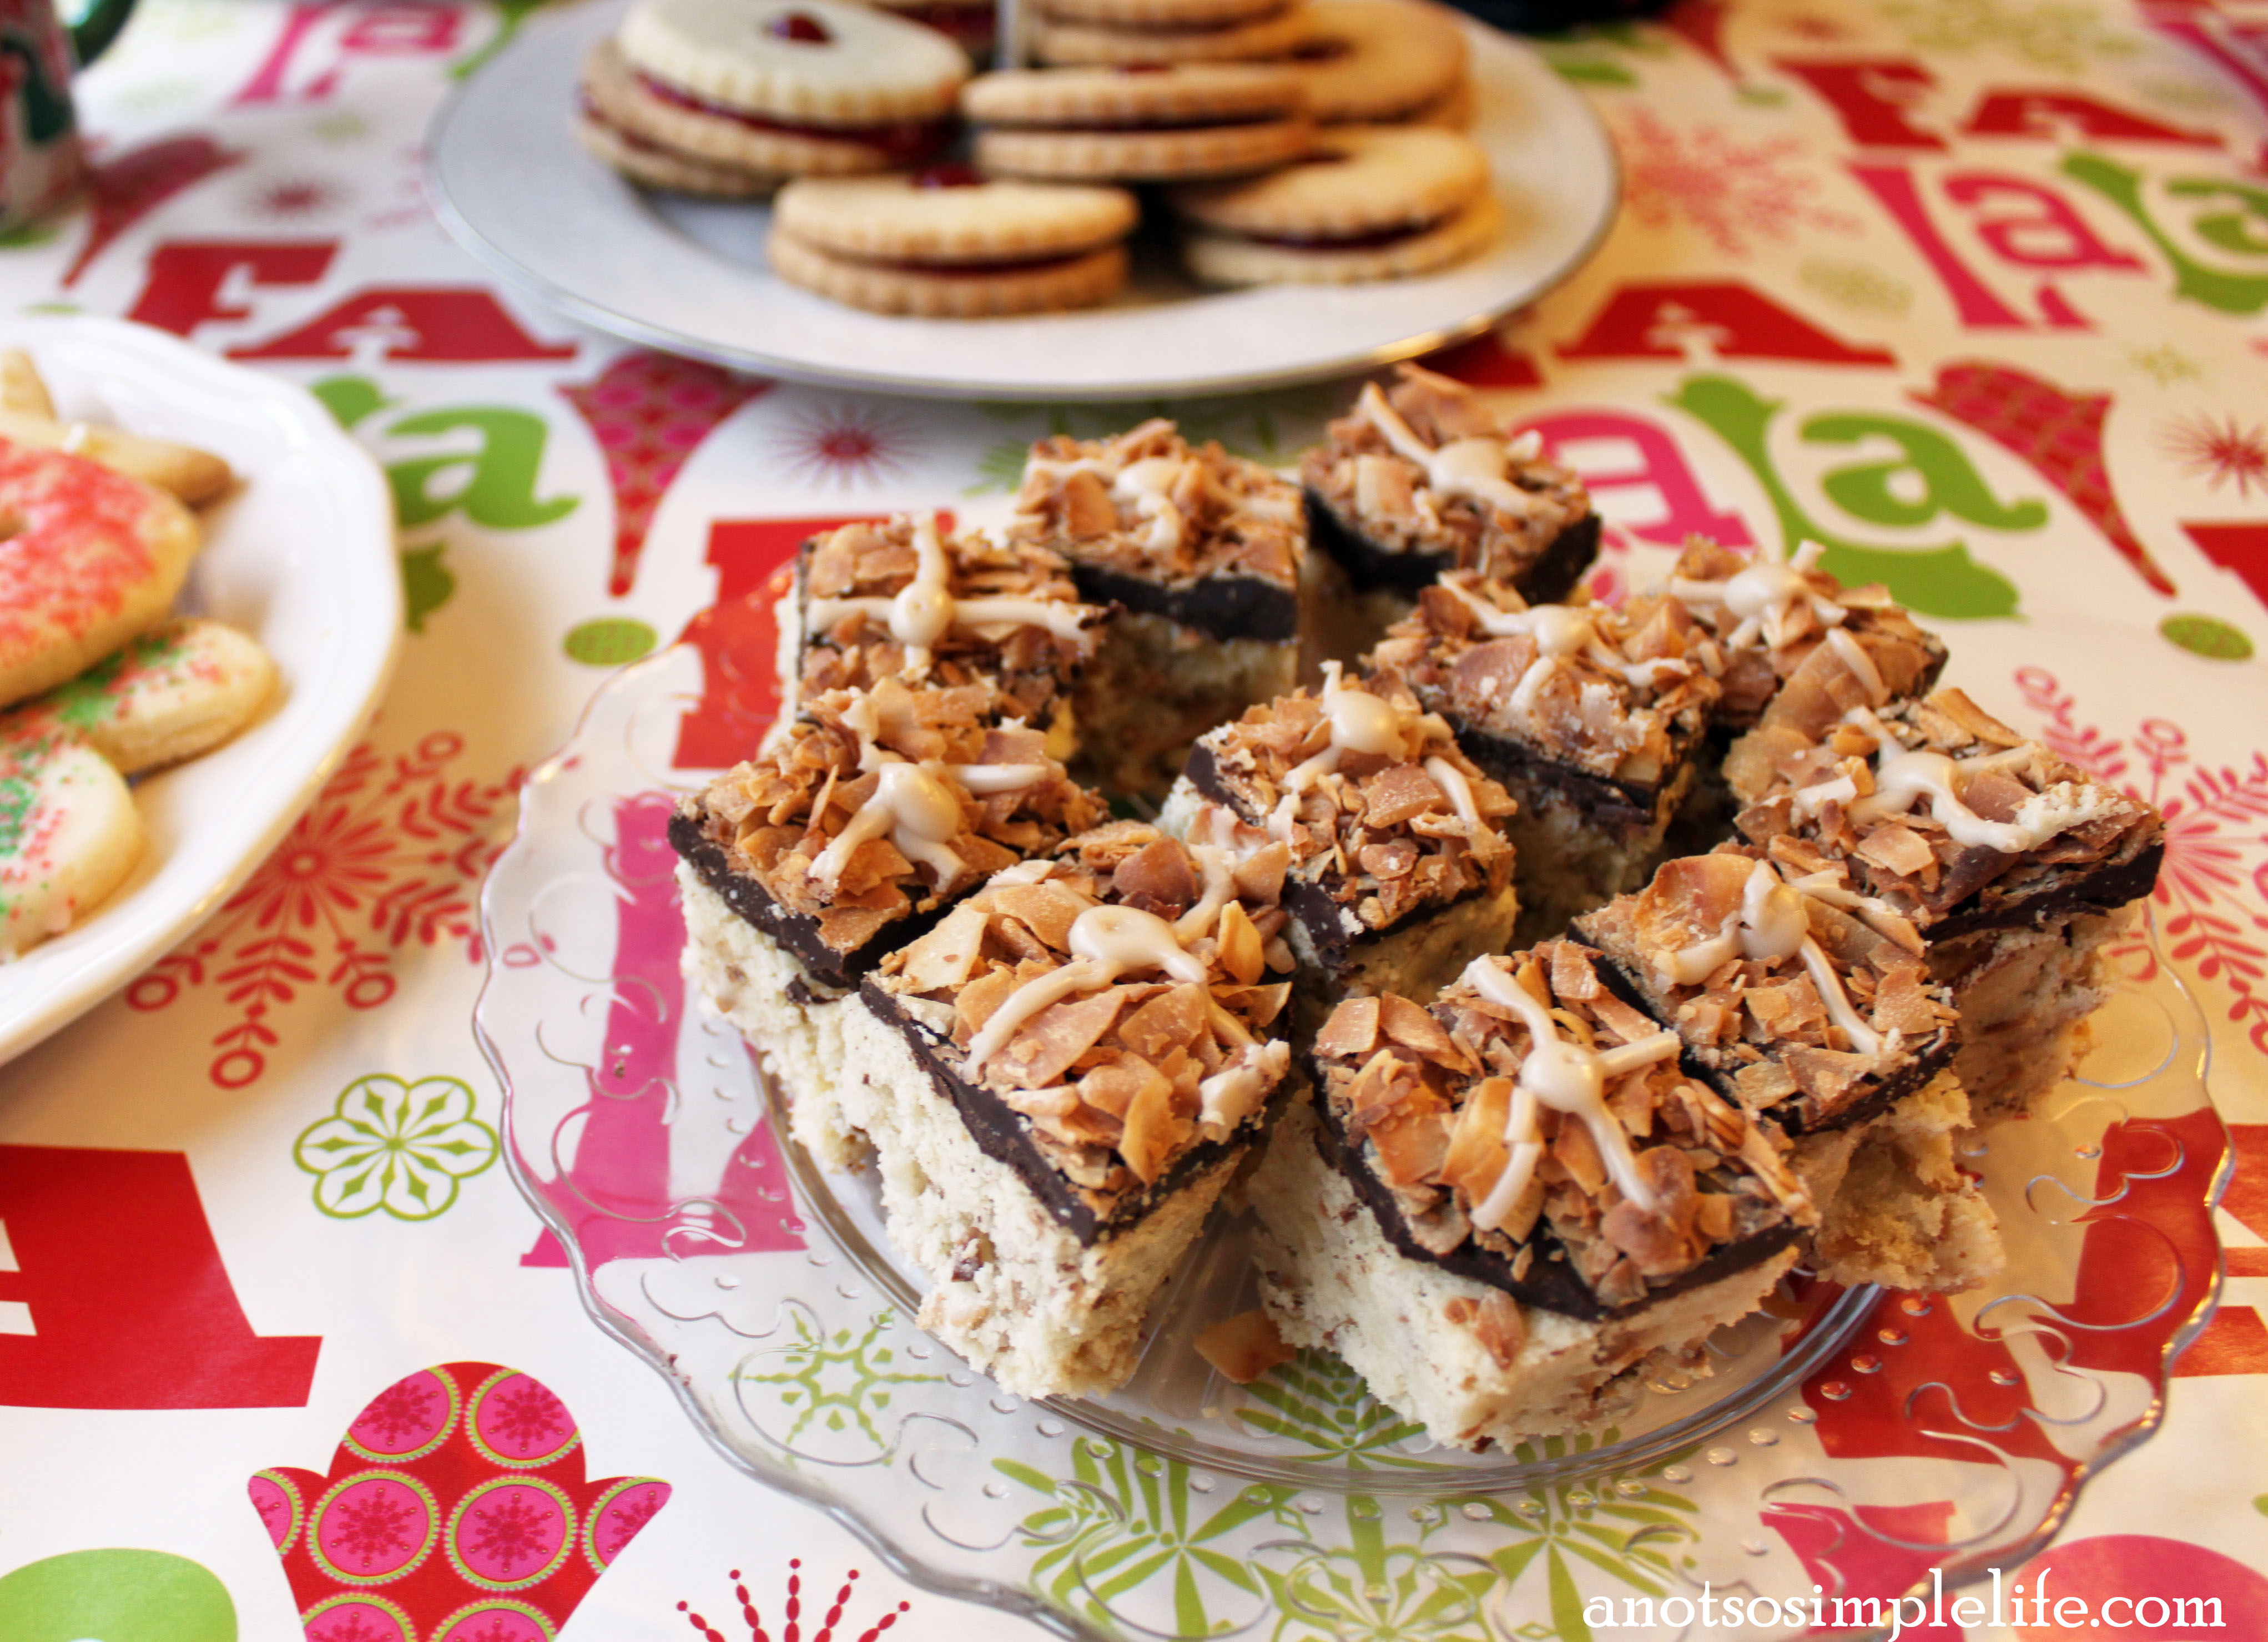 Toasted Coconut Shortbread; Gluten Free, Dairy Free, Soy Free, Nut Free, Egg Free Recipe